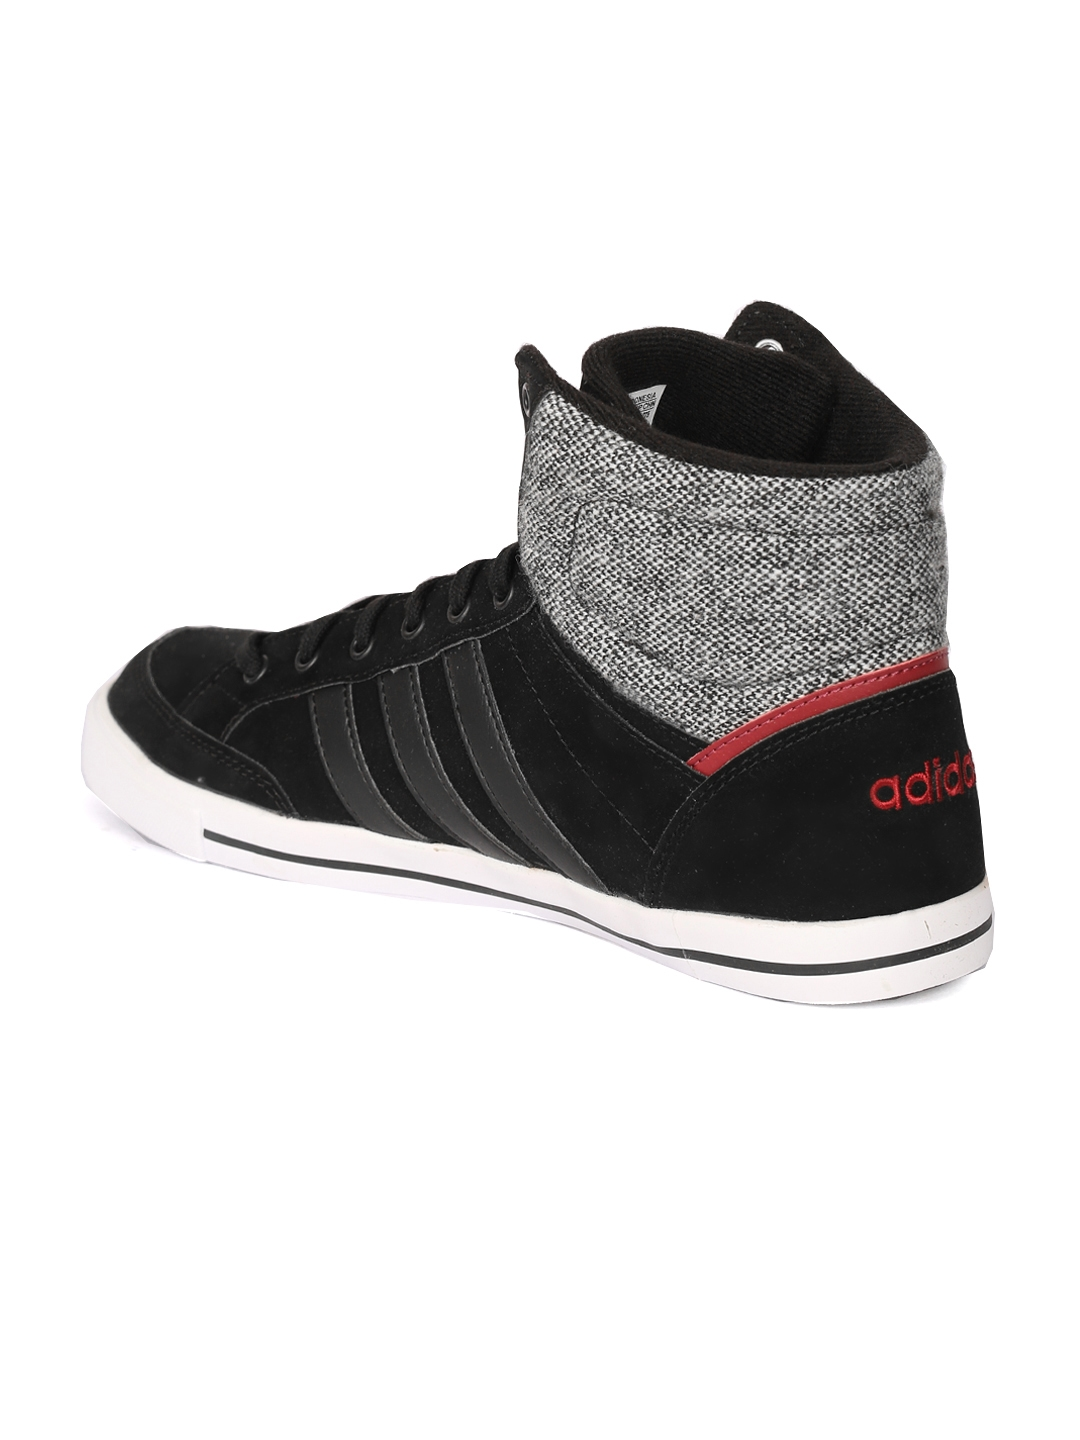 Buy ADIDAS NEO Men Black Cacity Mid Sneakers - Casual Shoes for Men ... 6984f1d35